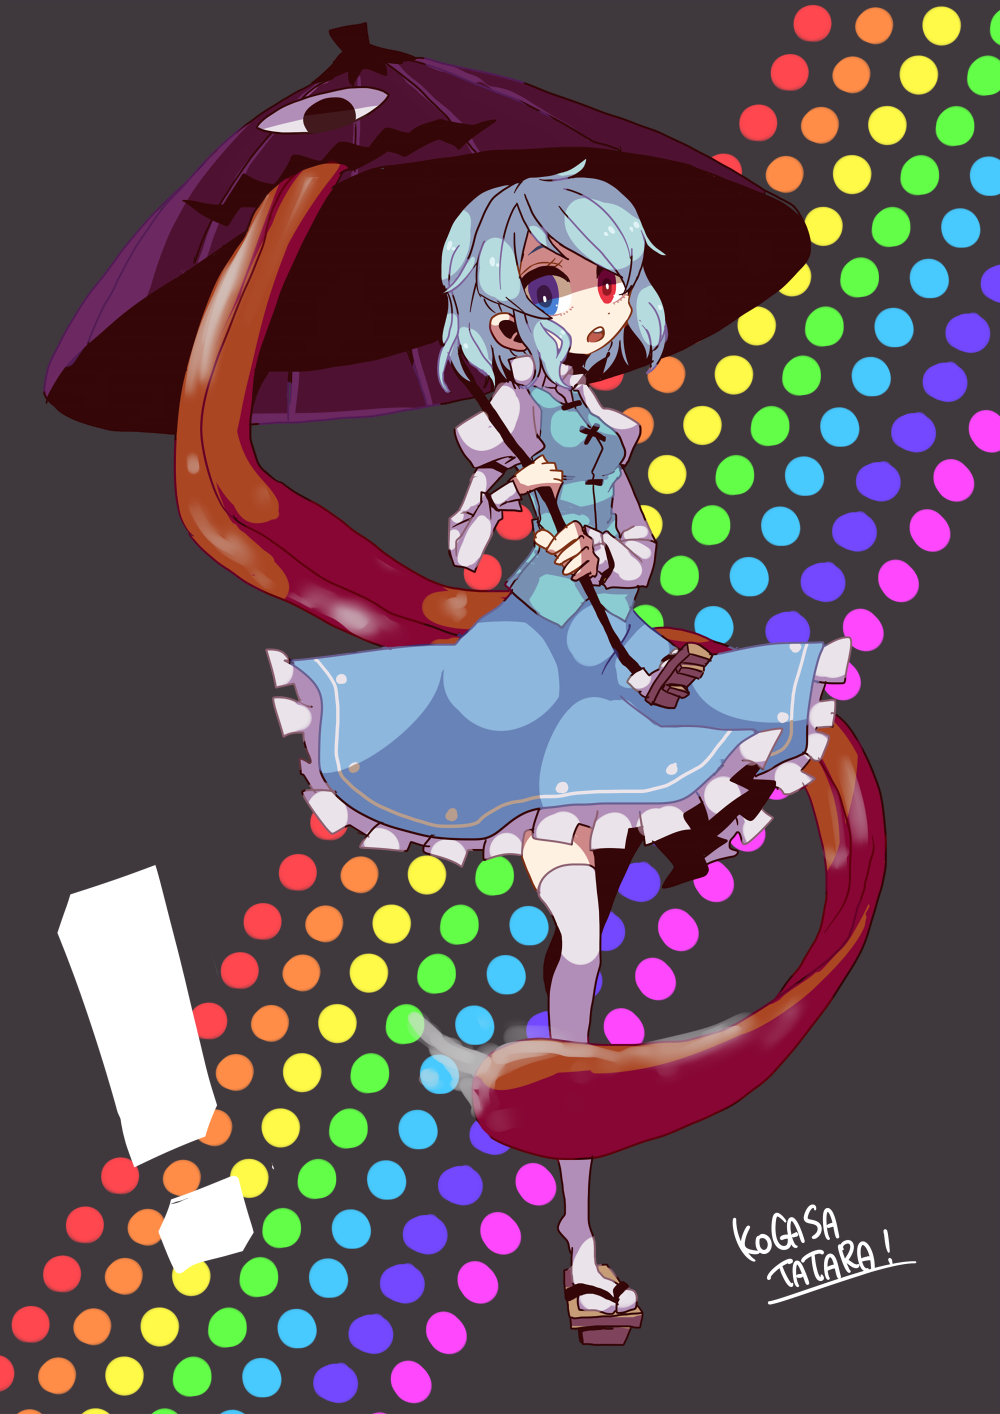 Pin by Phoenixwing on Kogasa Tatara Touhou Project (東方